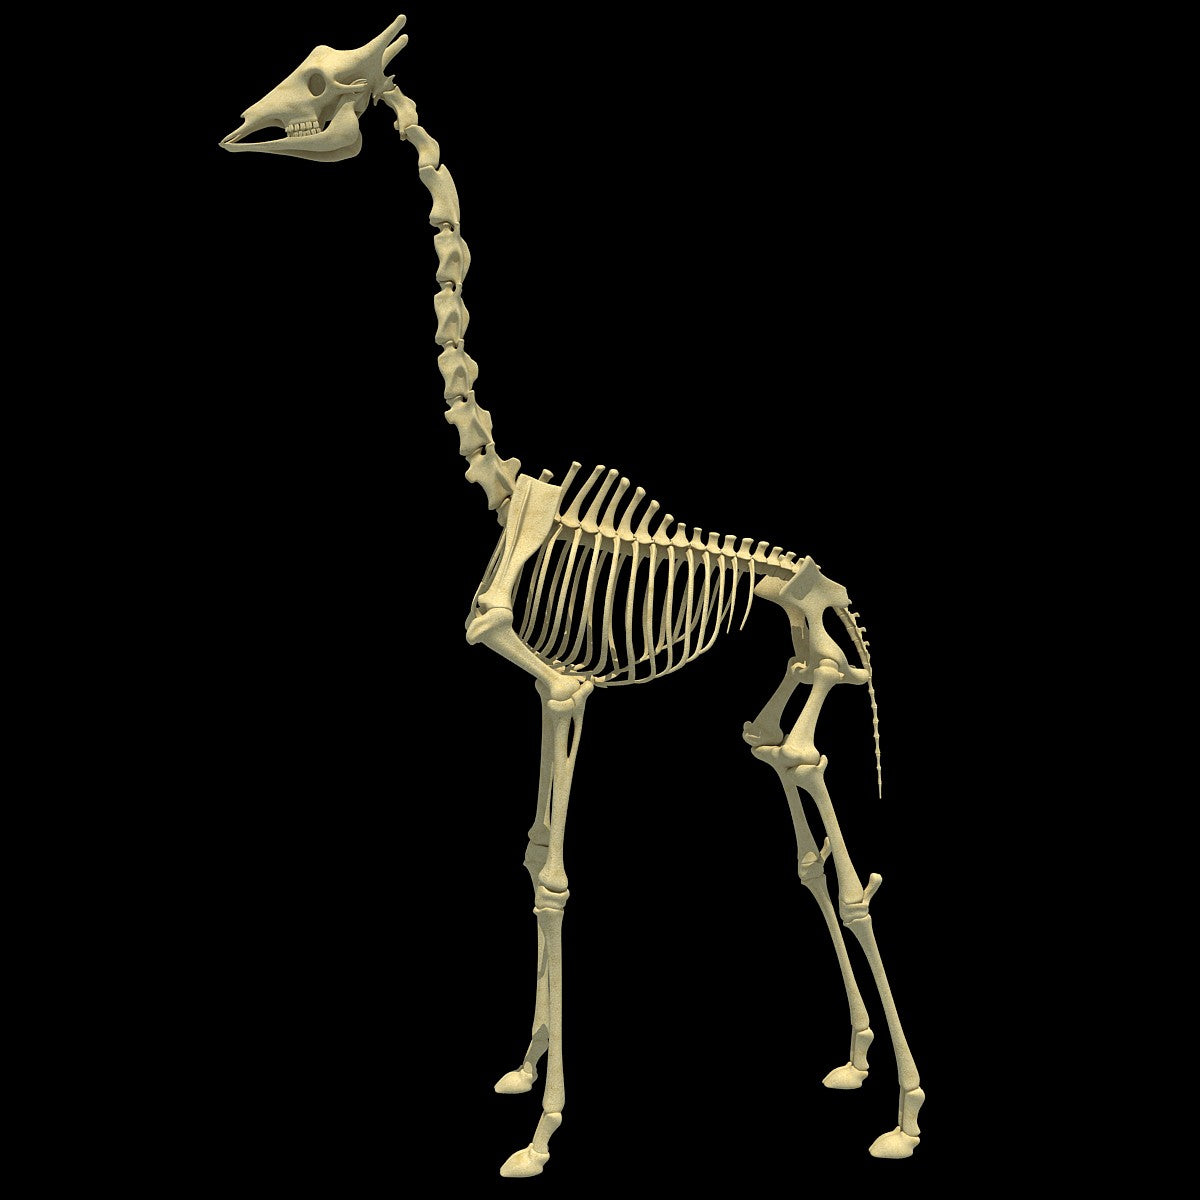 Giraffe Skeleton - Animal Skeletons